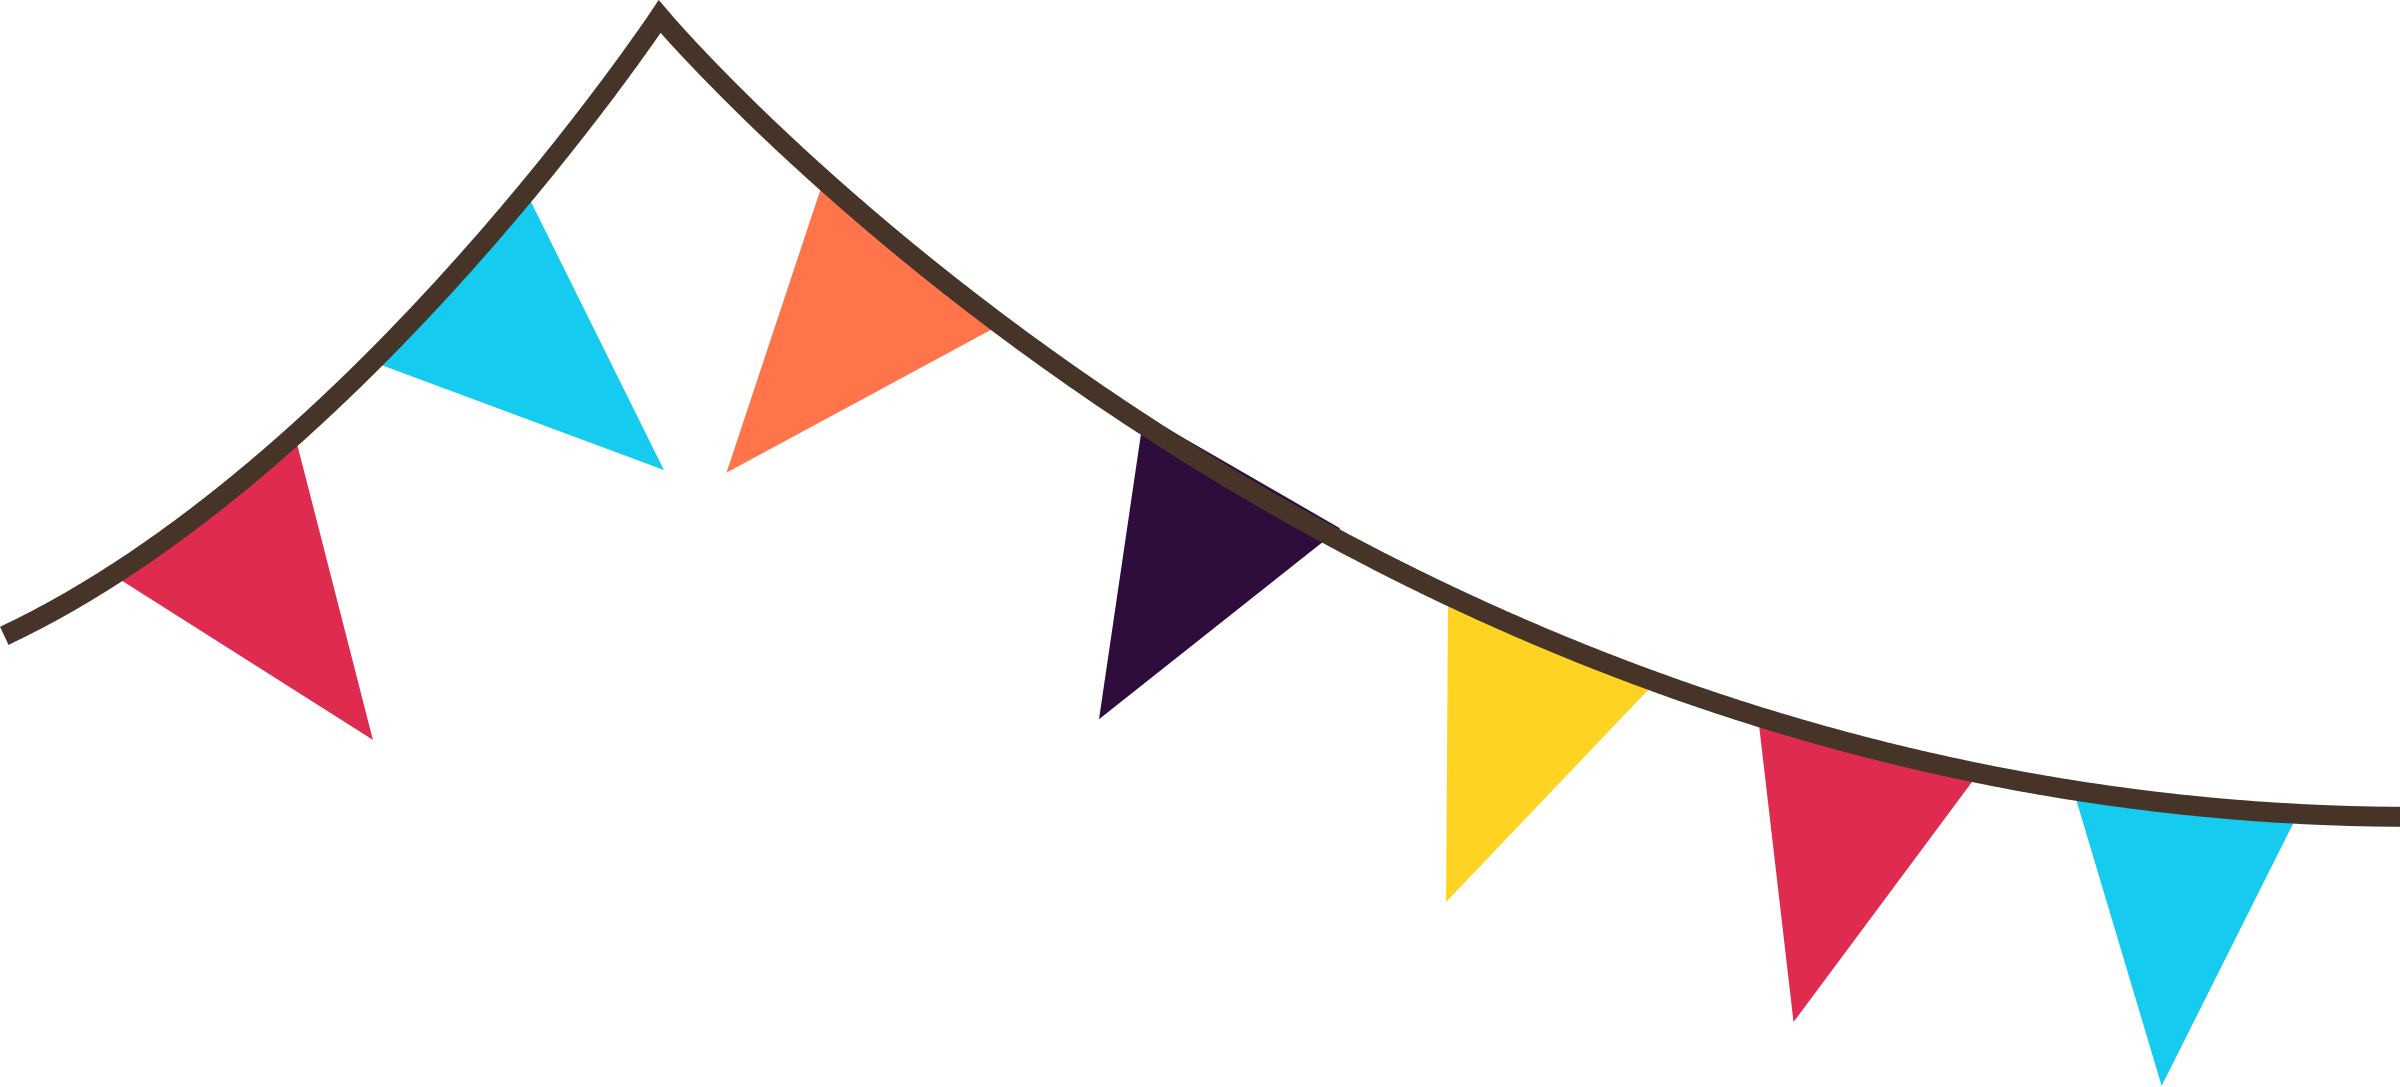 2400x1087 Triangle Clipart Triangle Banner